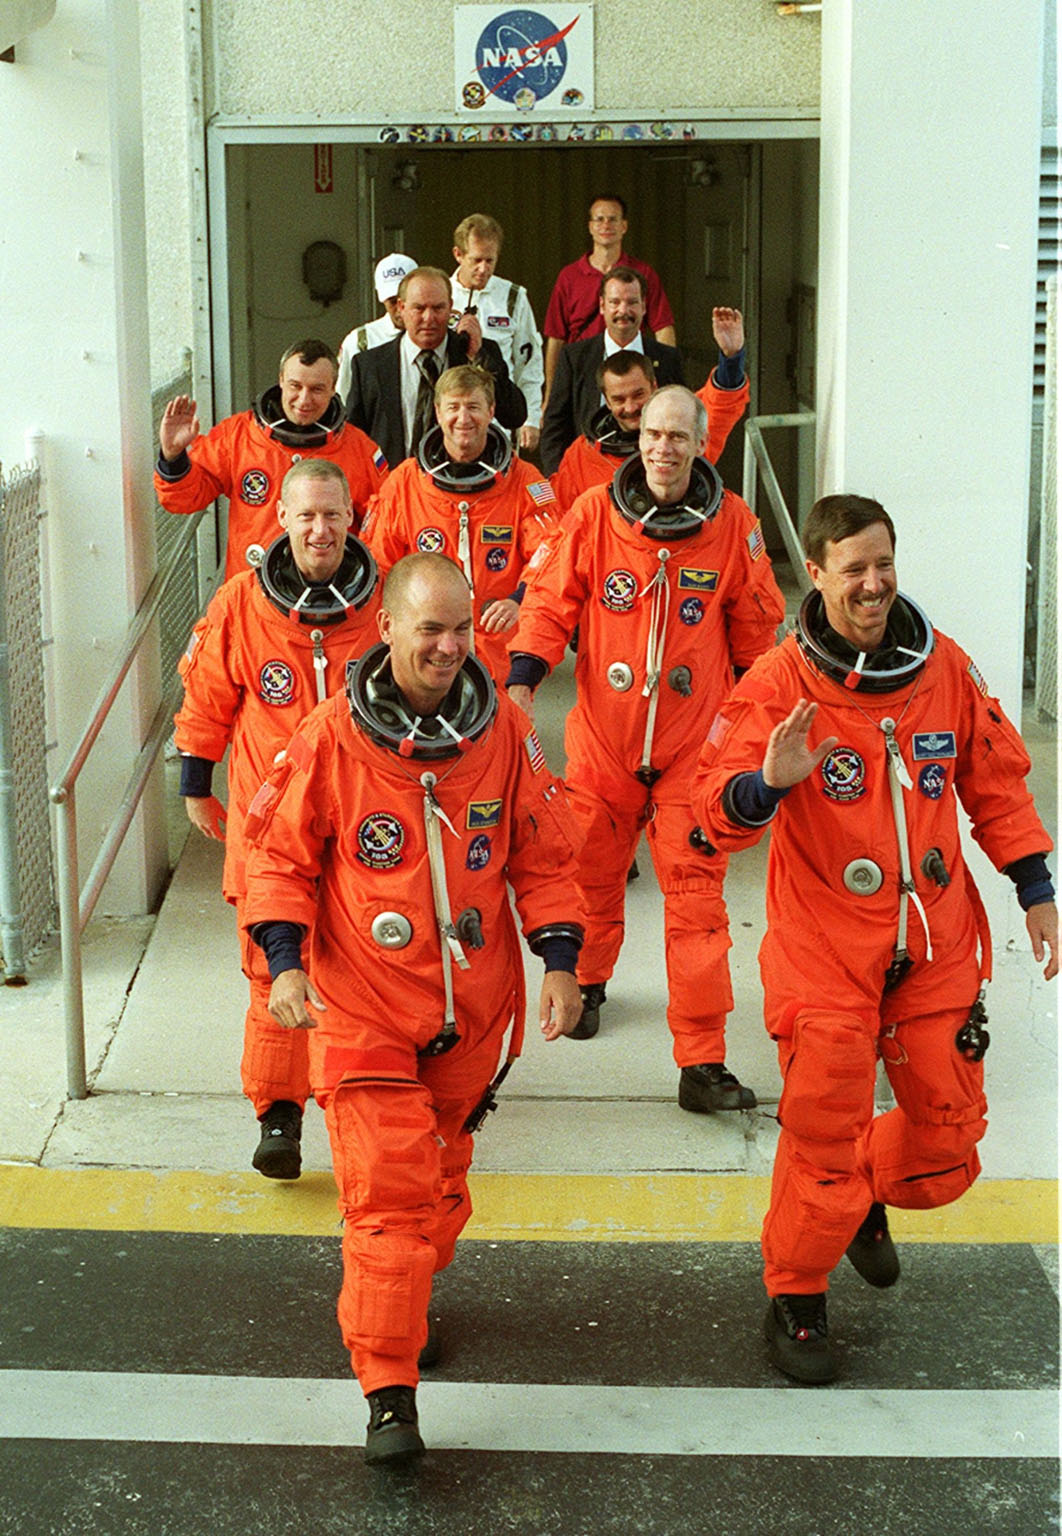 KENNEDY SPACE CENTER, Fla. -- The STS-105 and Expedition Three crews exit the Operations and Checkout Building on their way to Launch Pad 39A and a simulated launch countdown. From front to back, the crew members are Pilot Rick Sturckow (left) and Commander Scott Horowitz (right); Mission Specialists Patrick Forrester (left) and Dan Barry (right); cosmonaut Vladimir Nikolaevich Dezhurov (left), Commander Frank Culbertson (center) and cosmonaut Mikhail Tyurin (right). Both crews are at Kennedy Space Center participating in a Terminal Countdown Demonstration Test, a dress rehearsal for launch. The activities also include emergency egress training and familiarization with the payload. Mission STS-105 will be transporting the Expedition Three crew, several payloads and scientific experiments to the International Space Station aboard Space Shuttle Discovery. The Expedition Two crew members currently on the Station will return to Earth on Discovery. The mission is scheduled to launch no earlier than Aug. 9, 2001